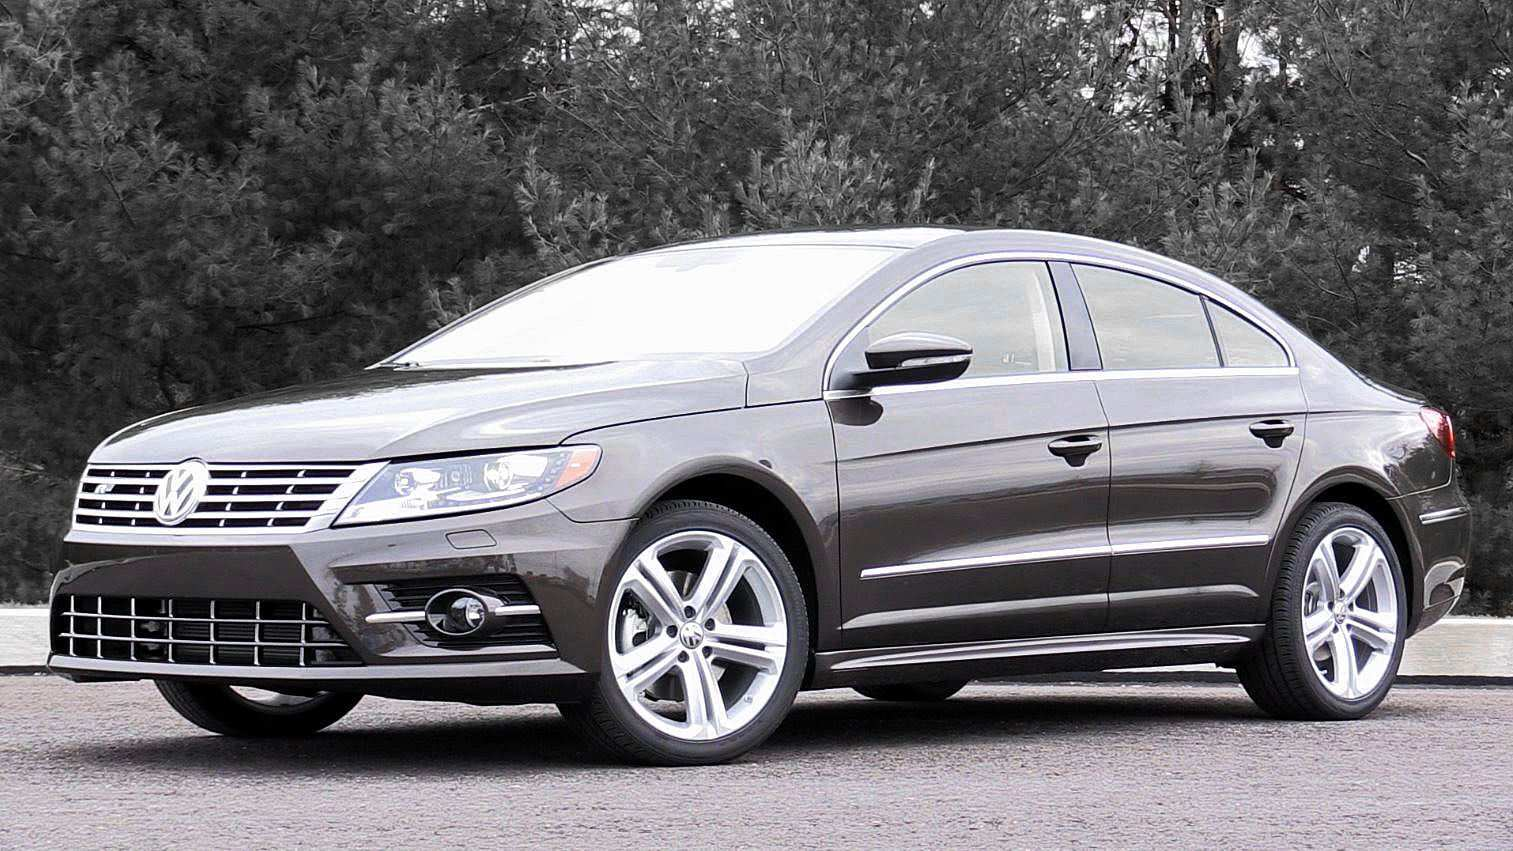 16 Concept of Vw Cc Redesign Images by Vw Cc Redesign